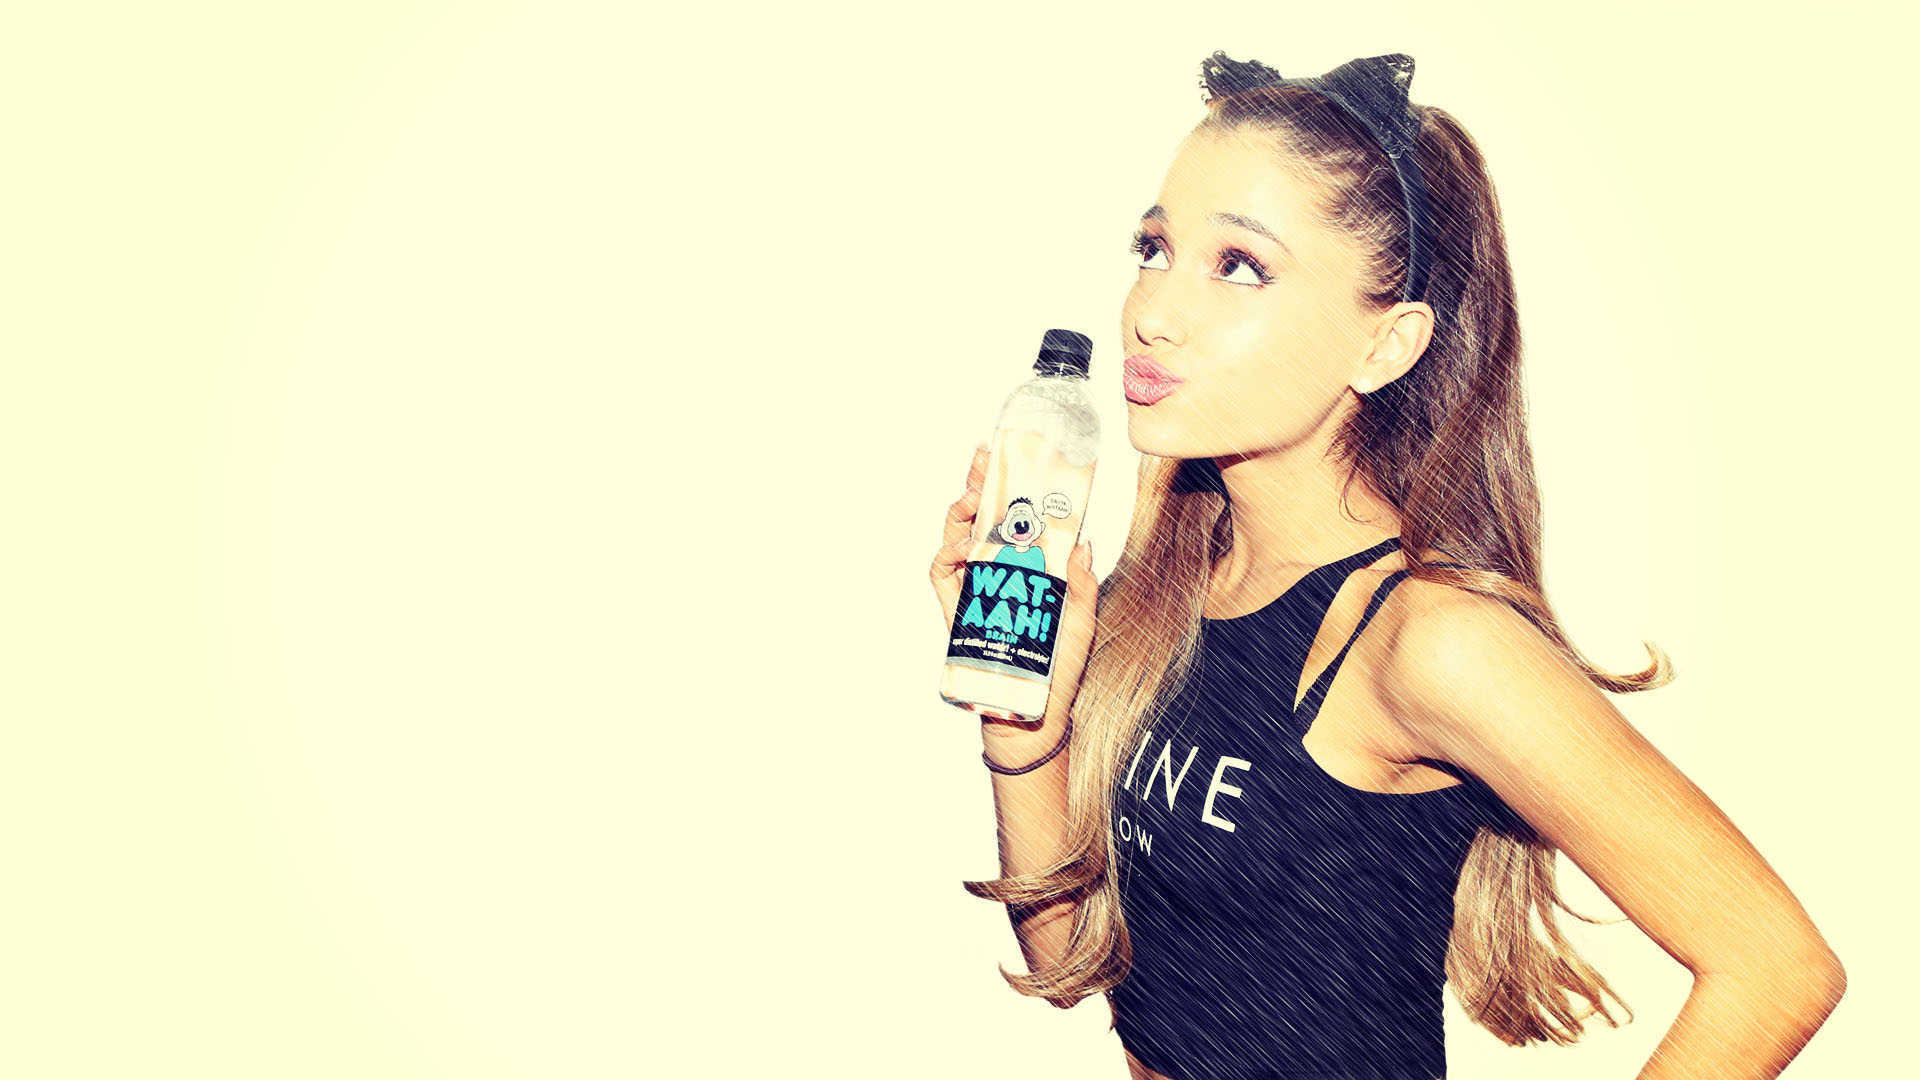 ariana grande wallpapers images photos pictures backgrounds